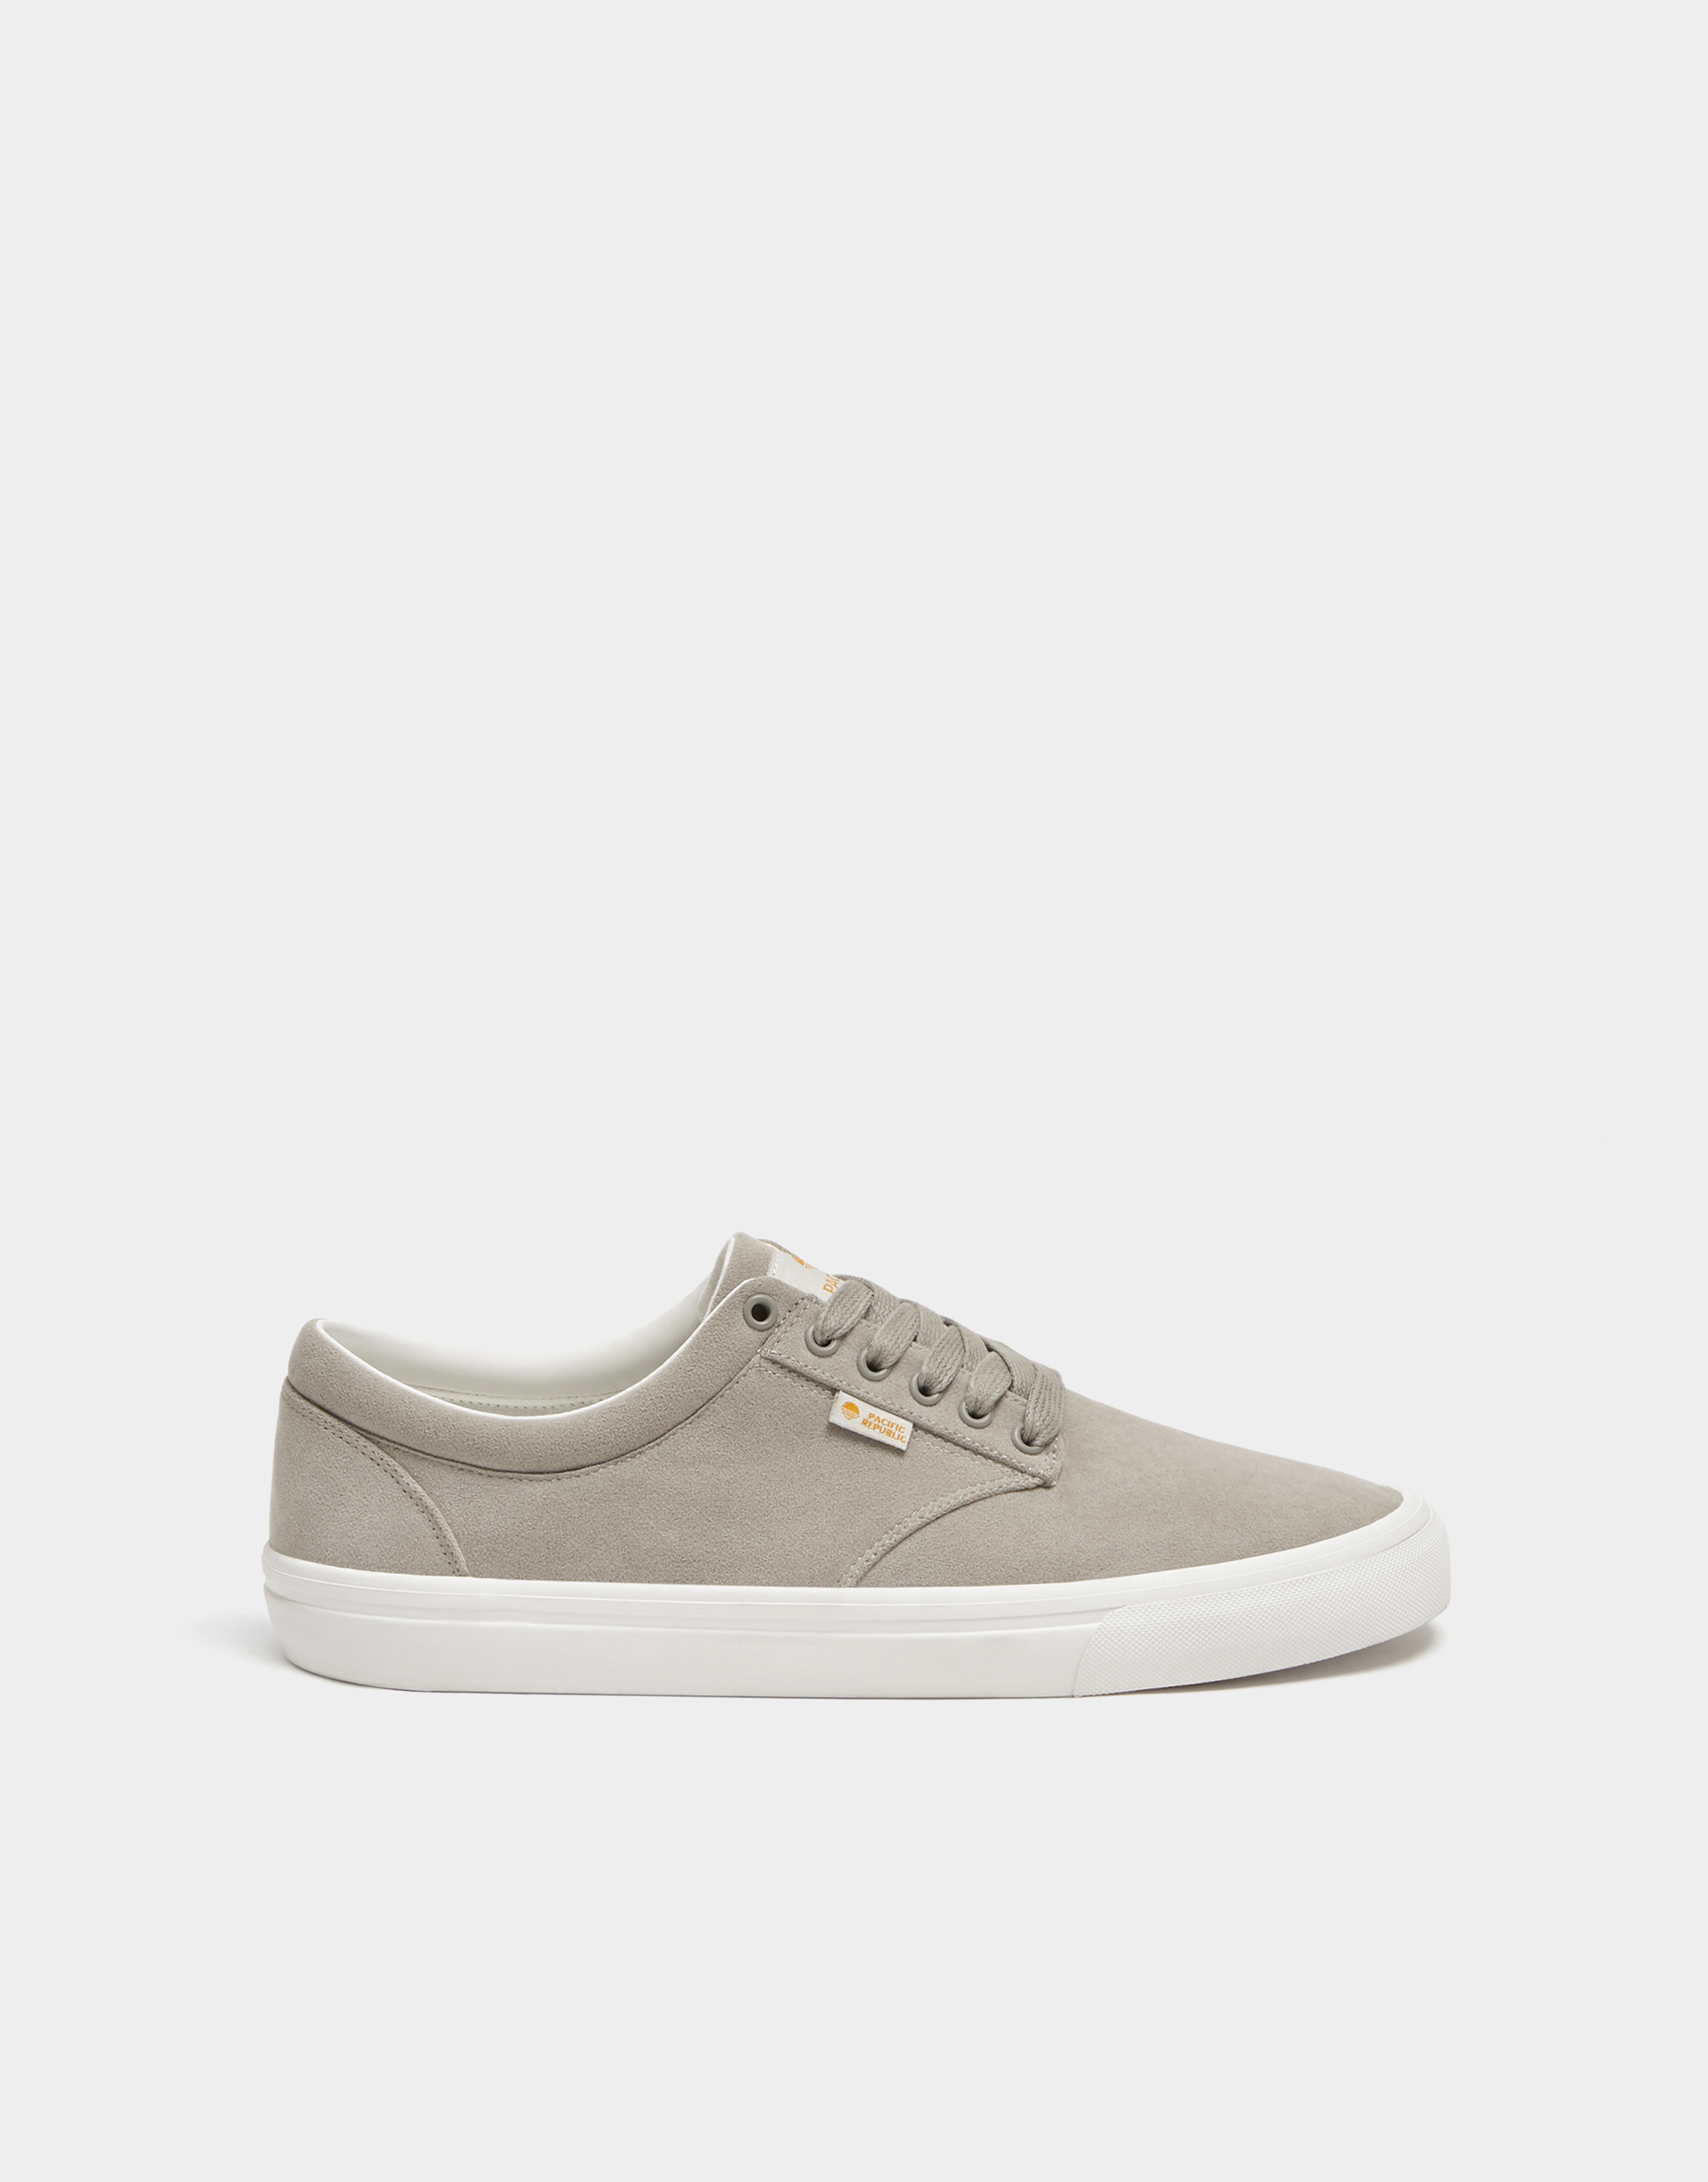 Summer Spring 2019 Pull amp;bear Men's Trainers ZAn88